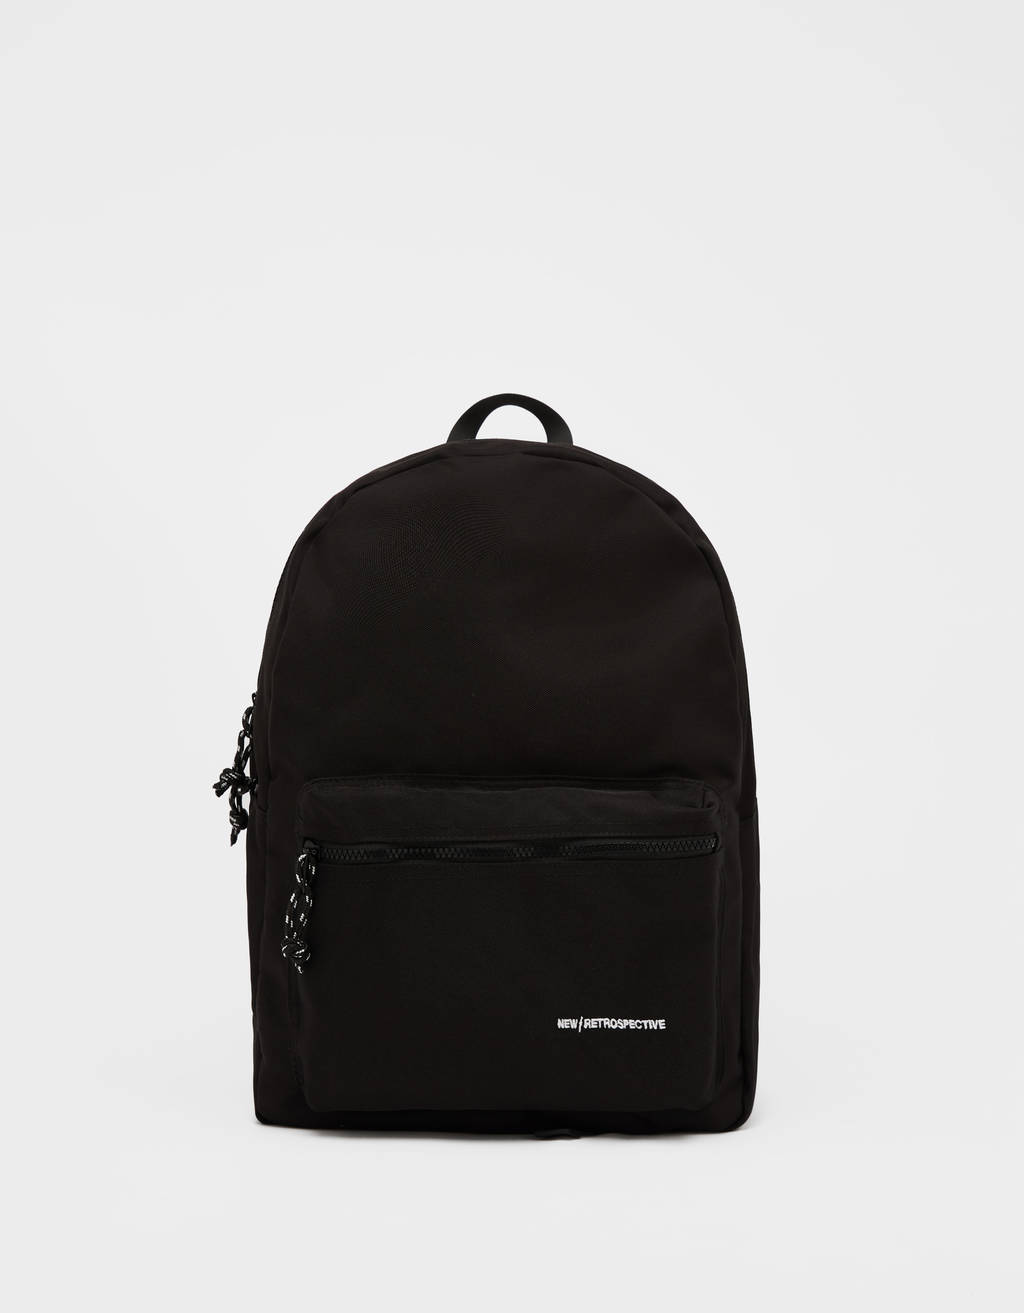 Monochrome backpack